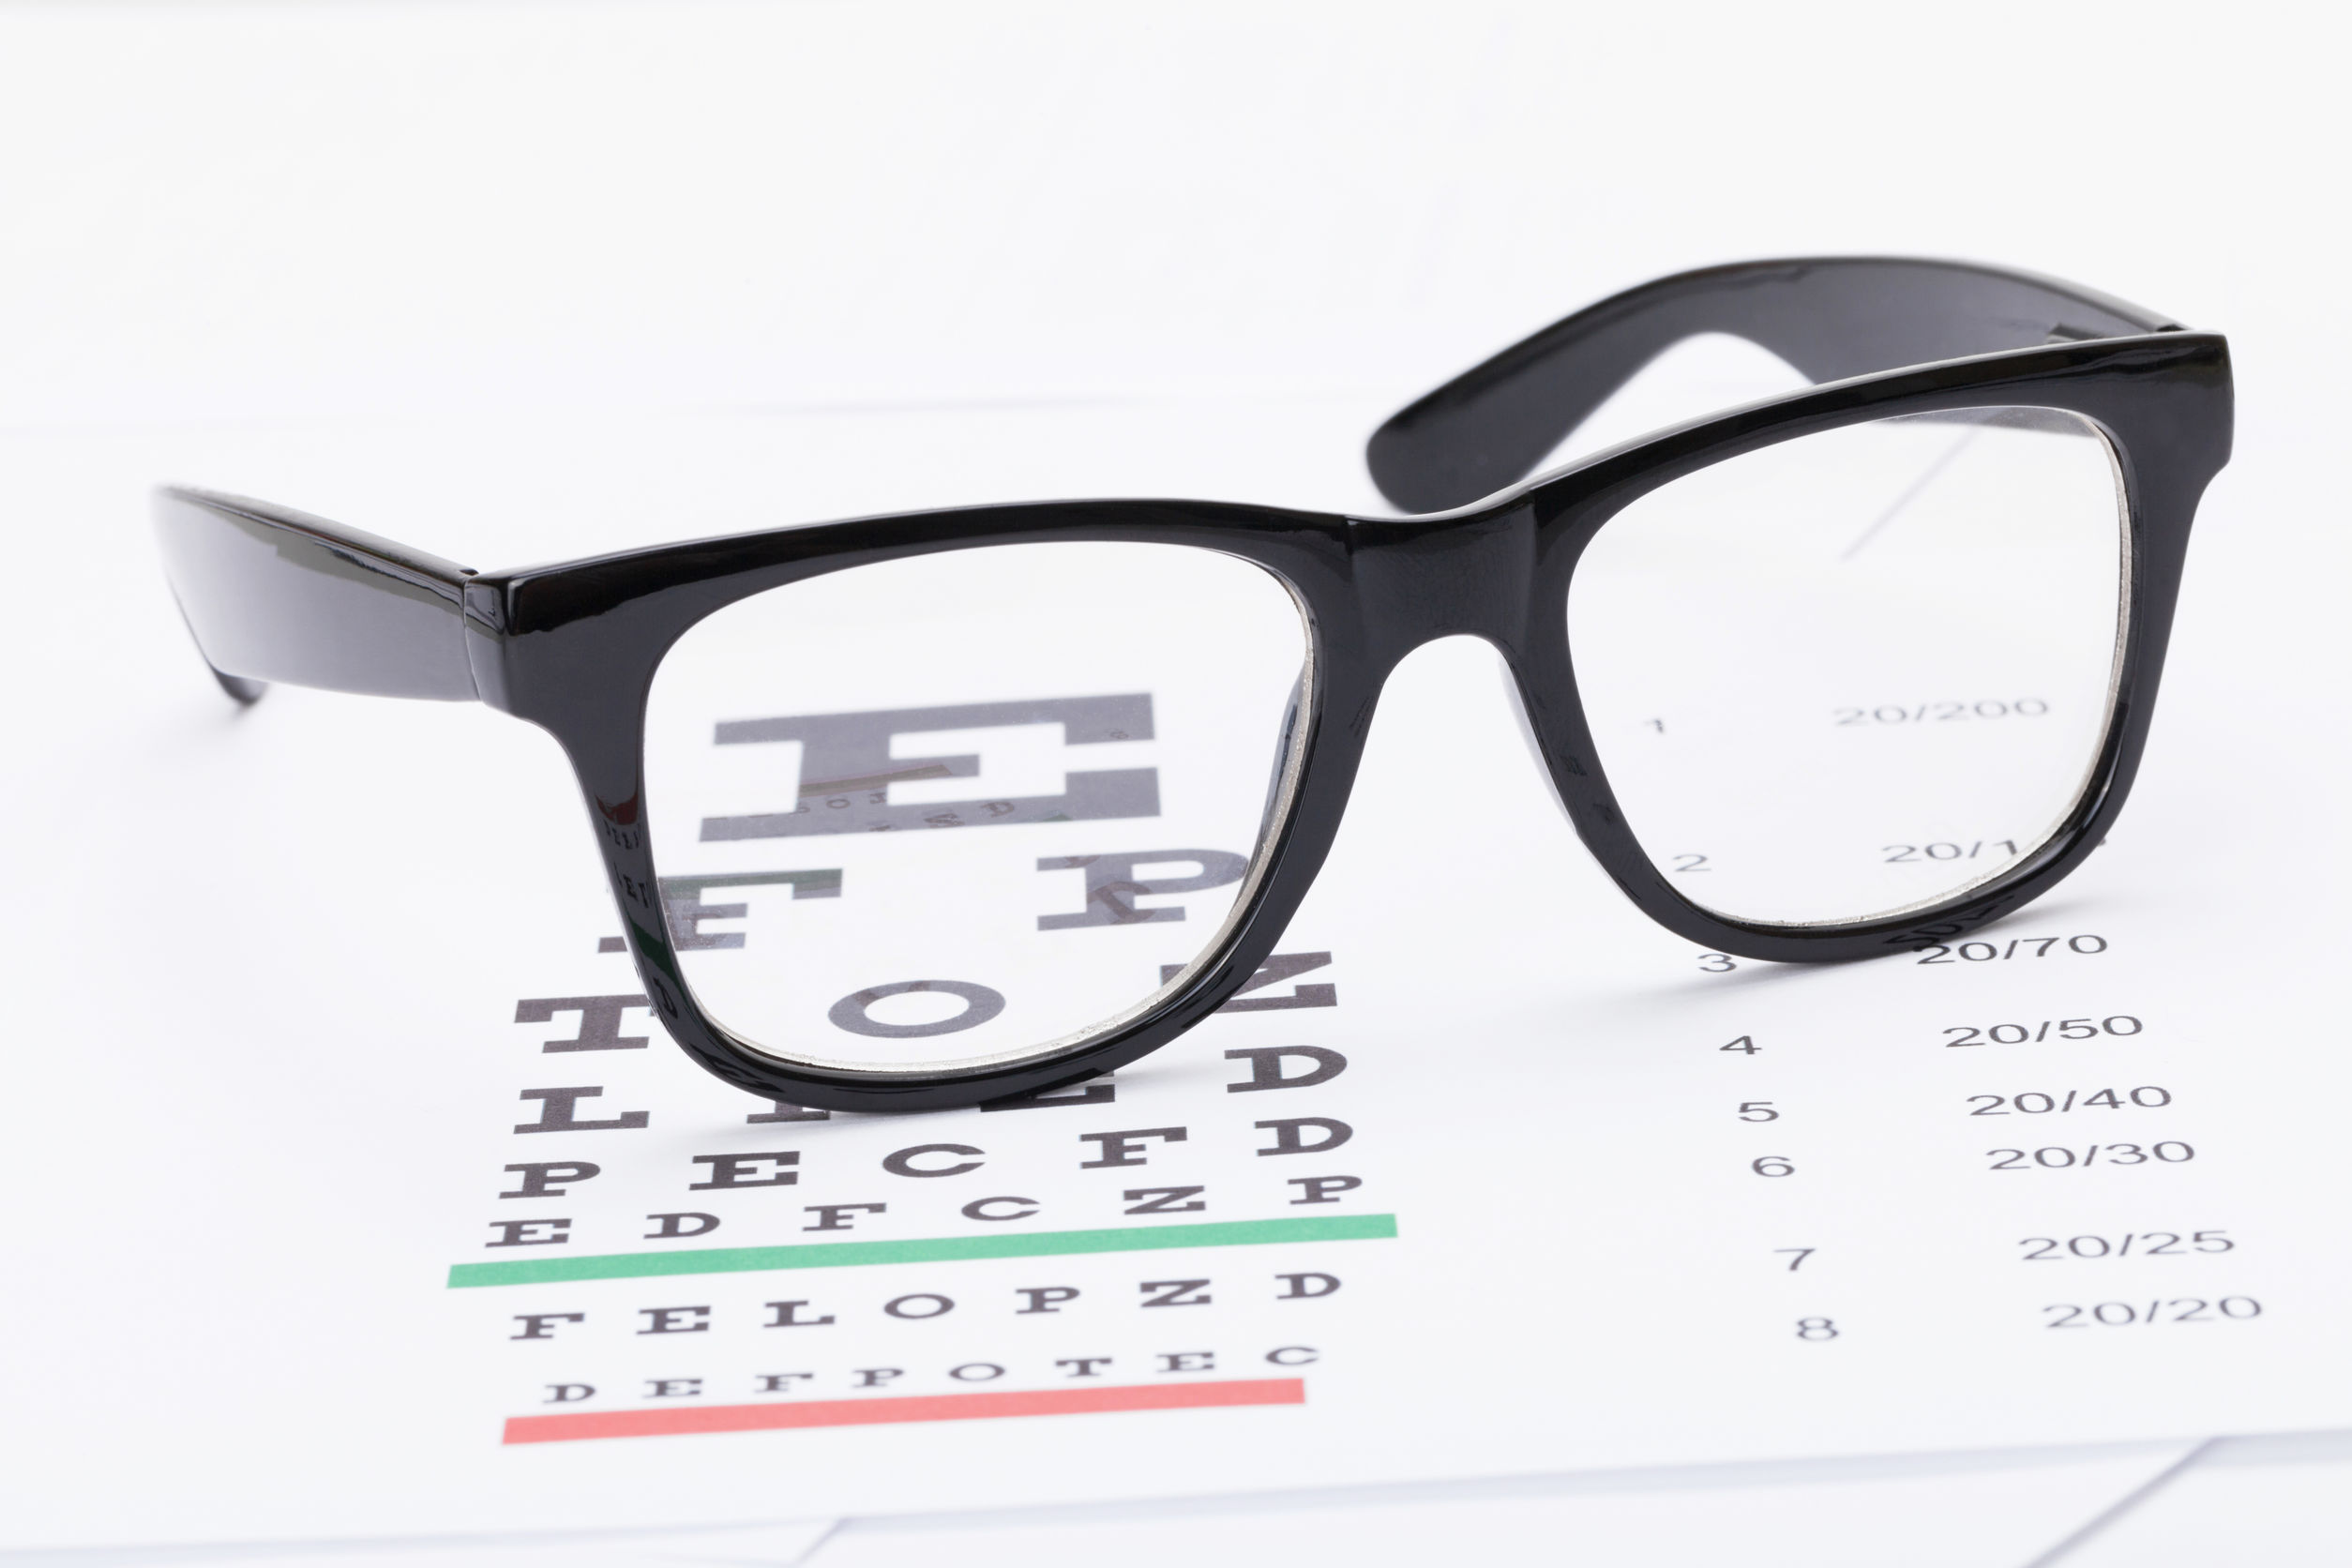 Table for eyesight test and neat glasses over it – close up studio shot